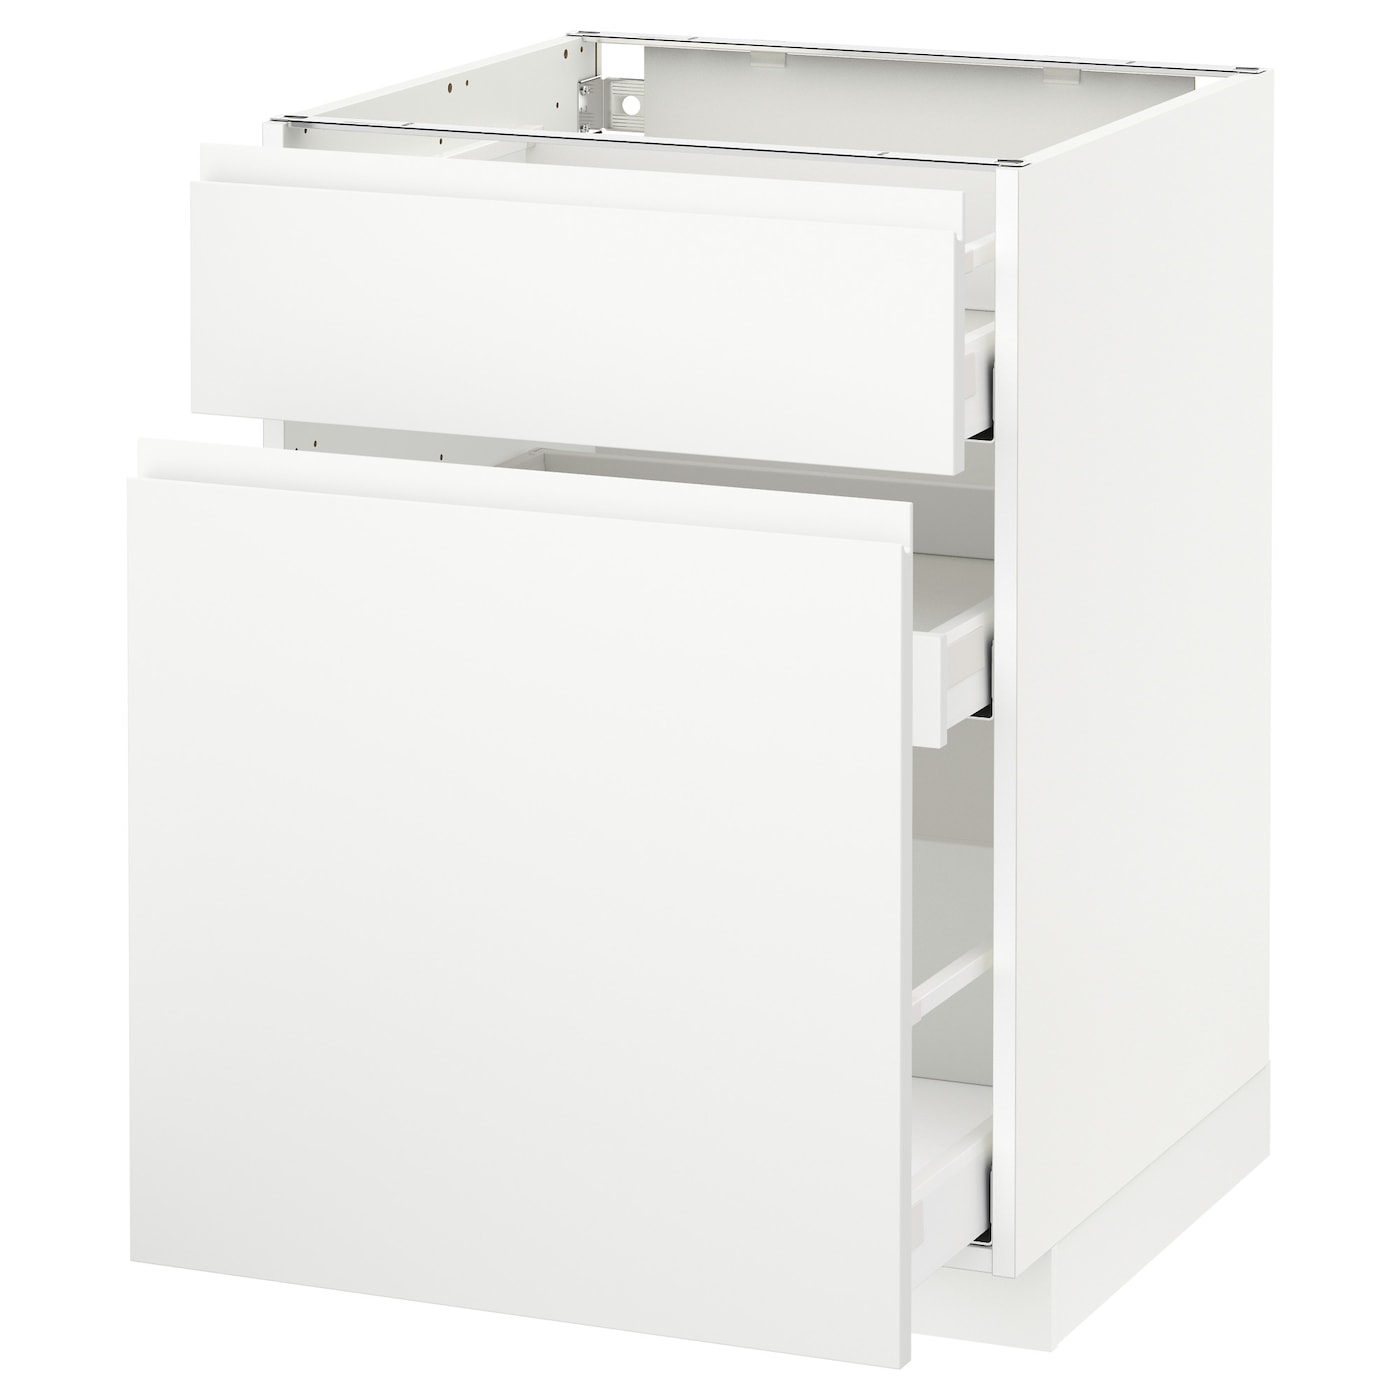 IKEA METOD/MAXIMERA base cabinet/p-out storage/drawer Smooth-running drawers with stop.